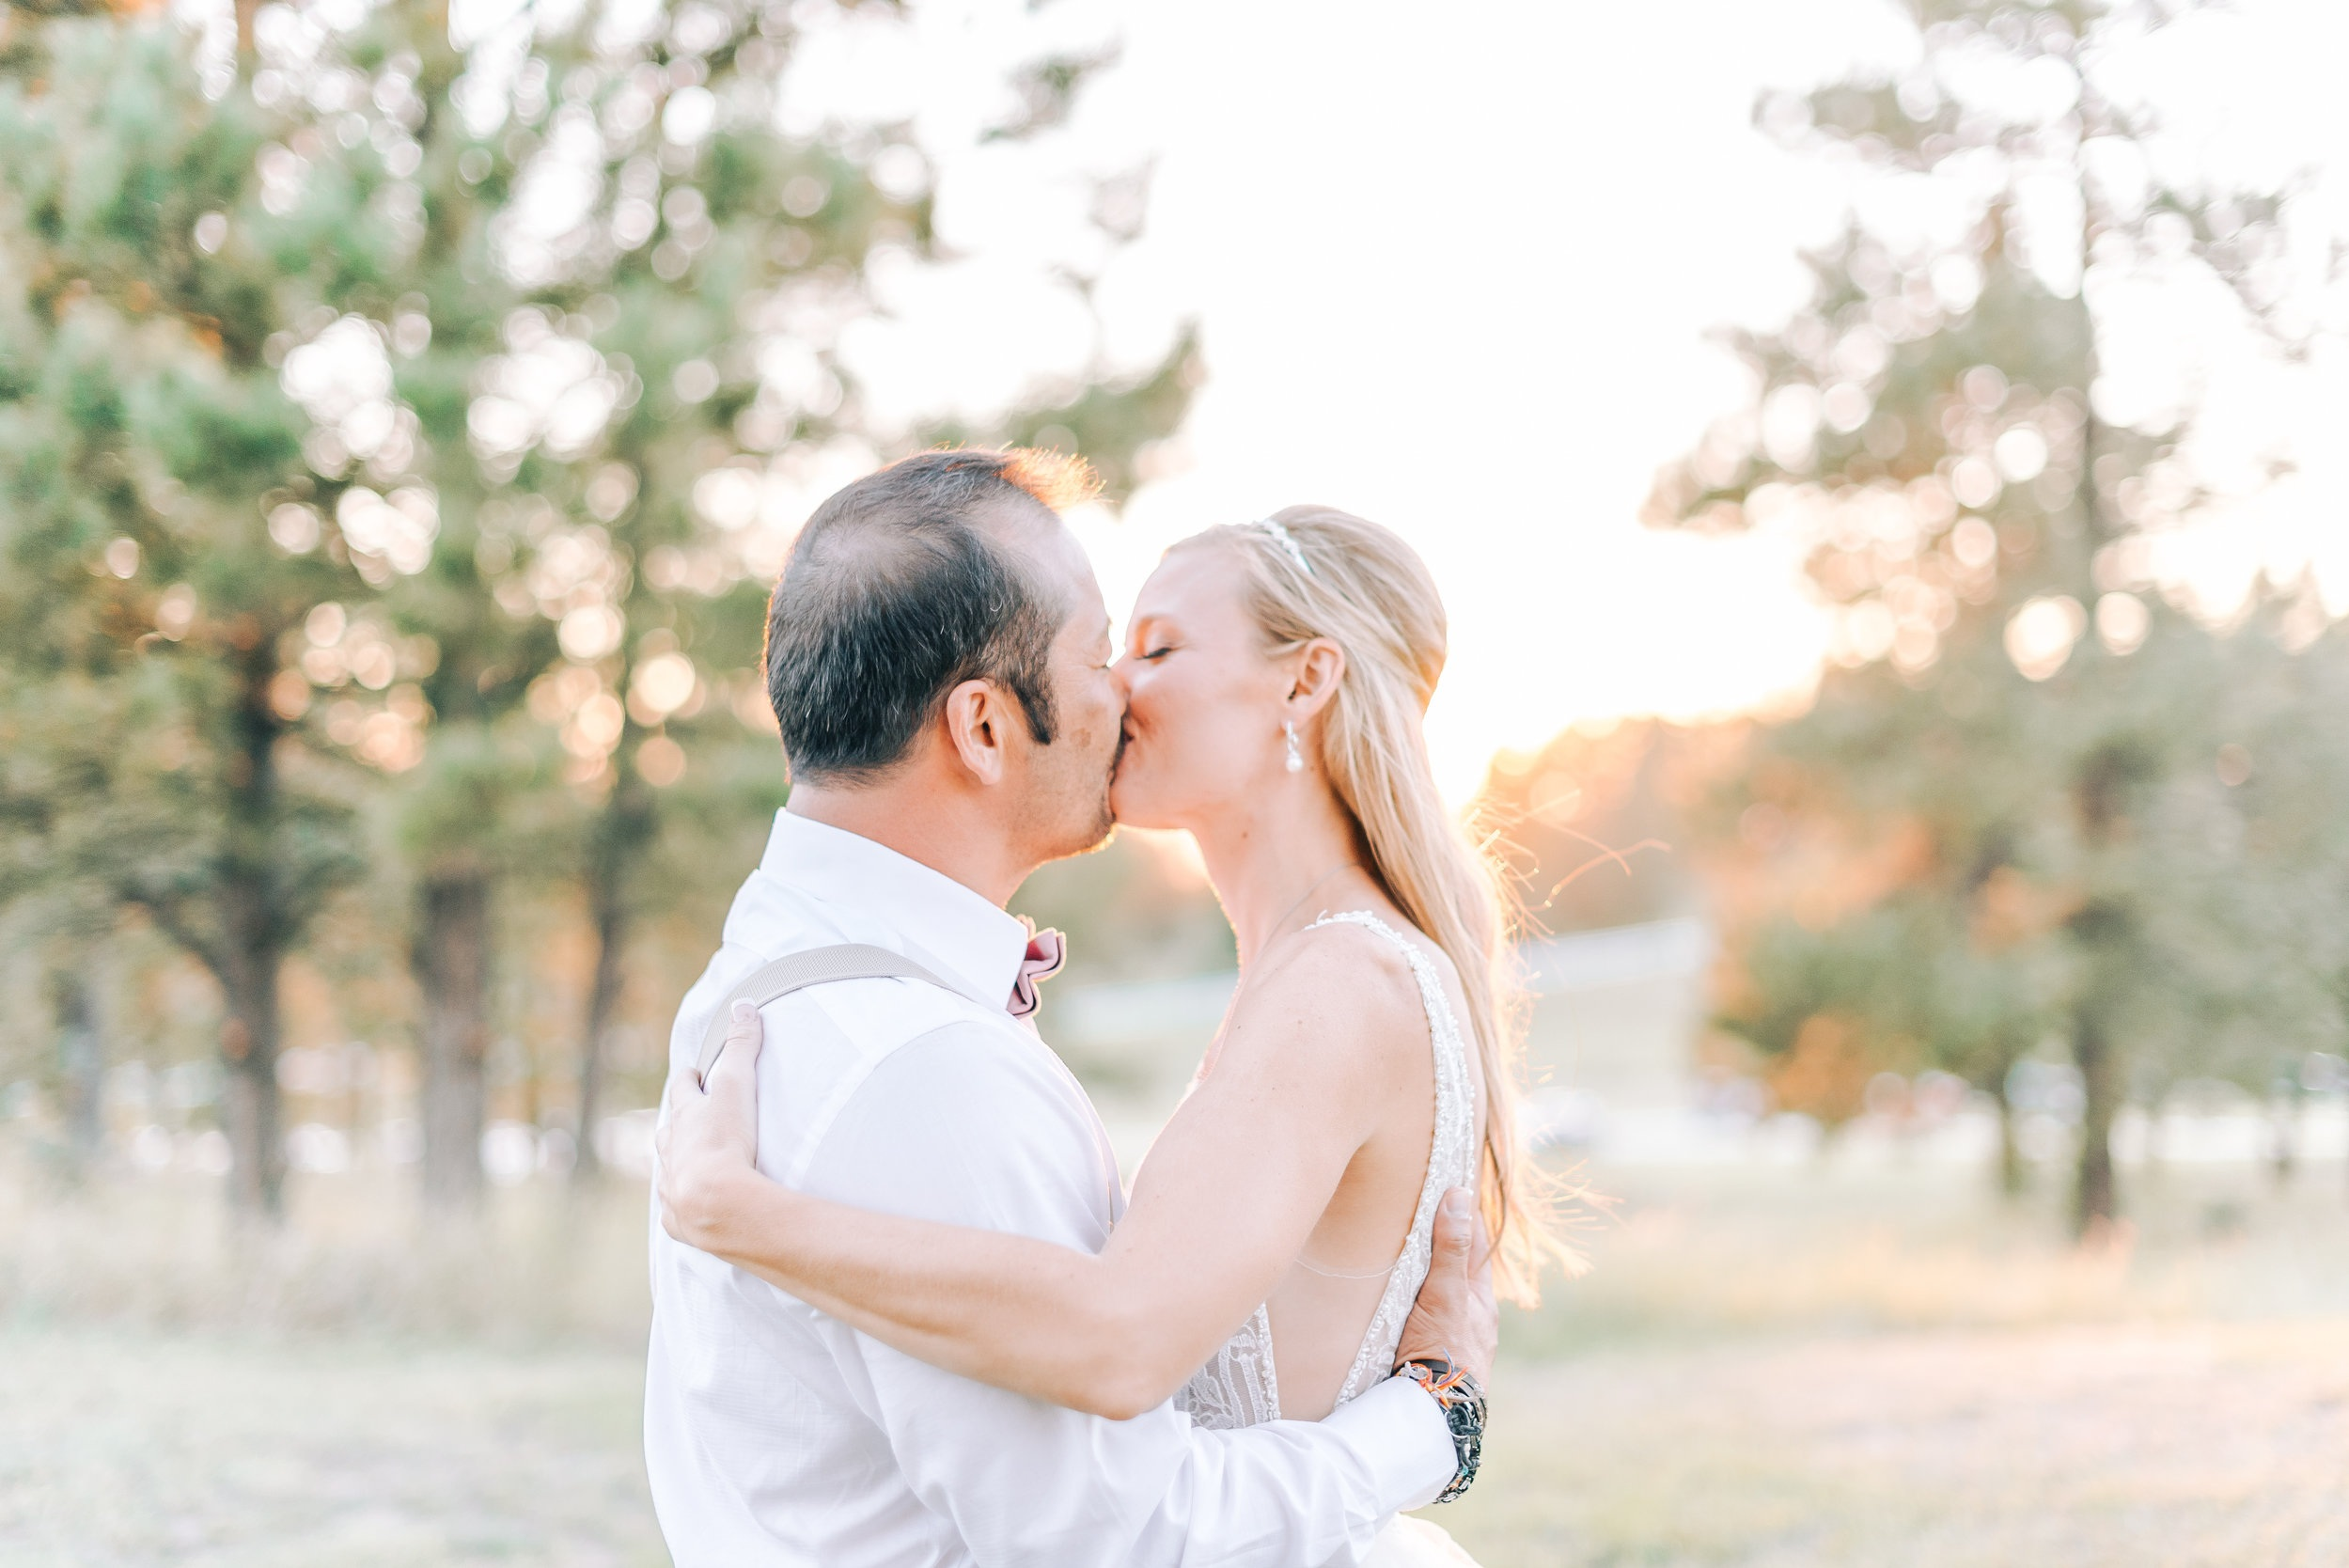 bride and groom poses, colorado wedding photography, denver wedding photography, evergreen wedding photography, parker wedding photography, must have wedding phots